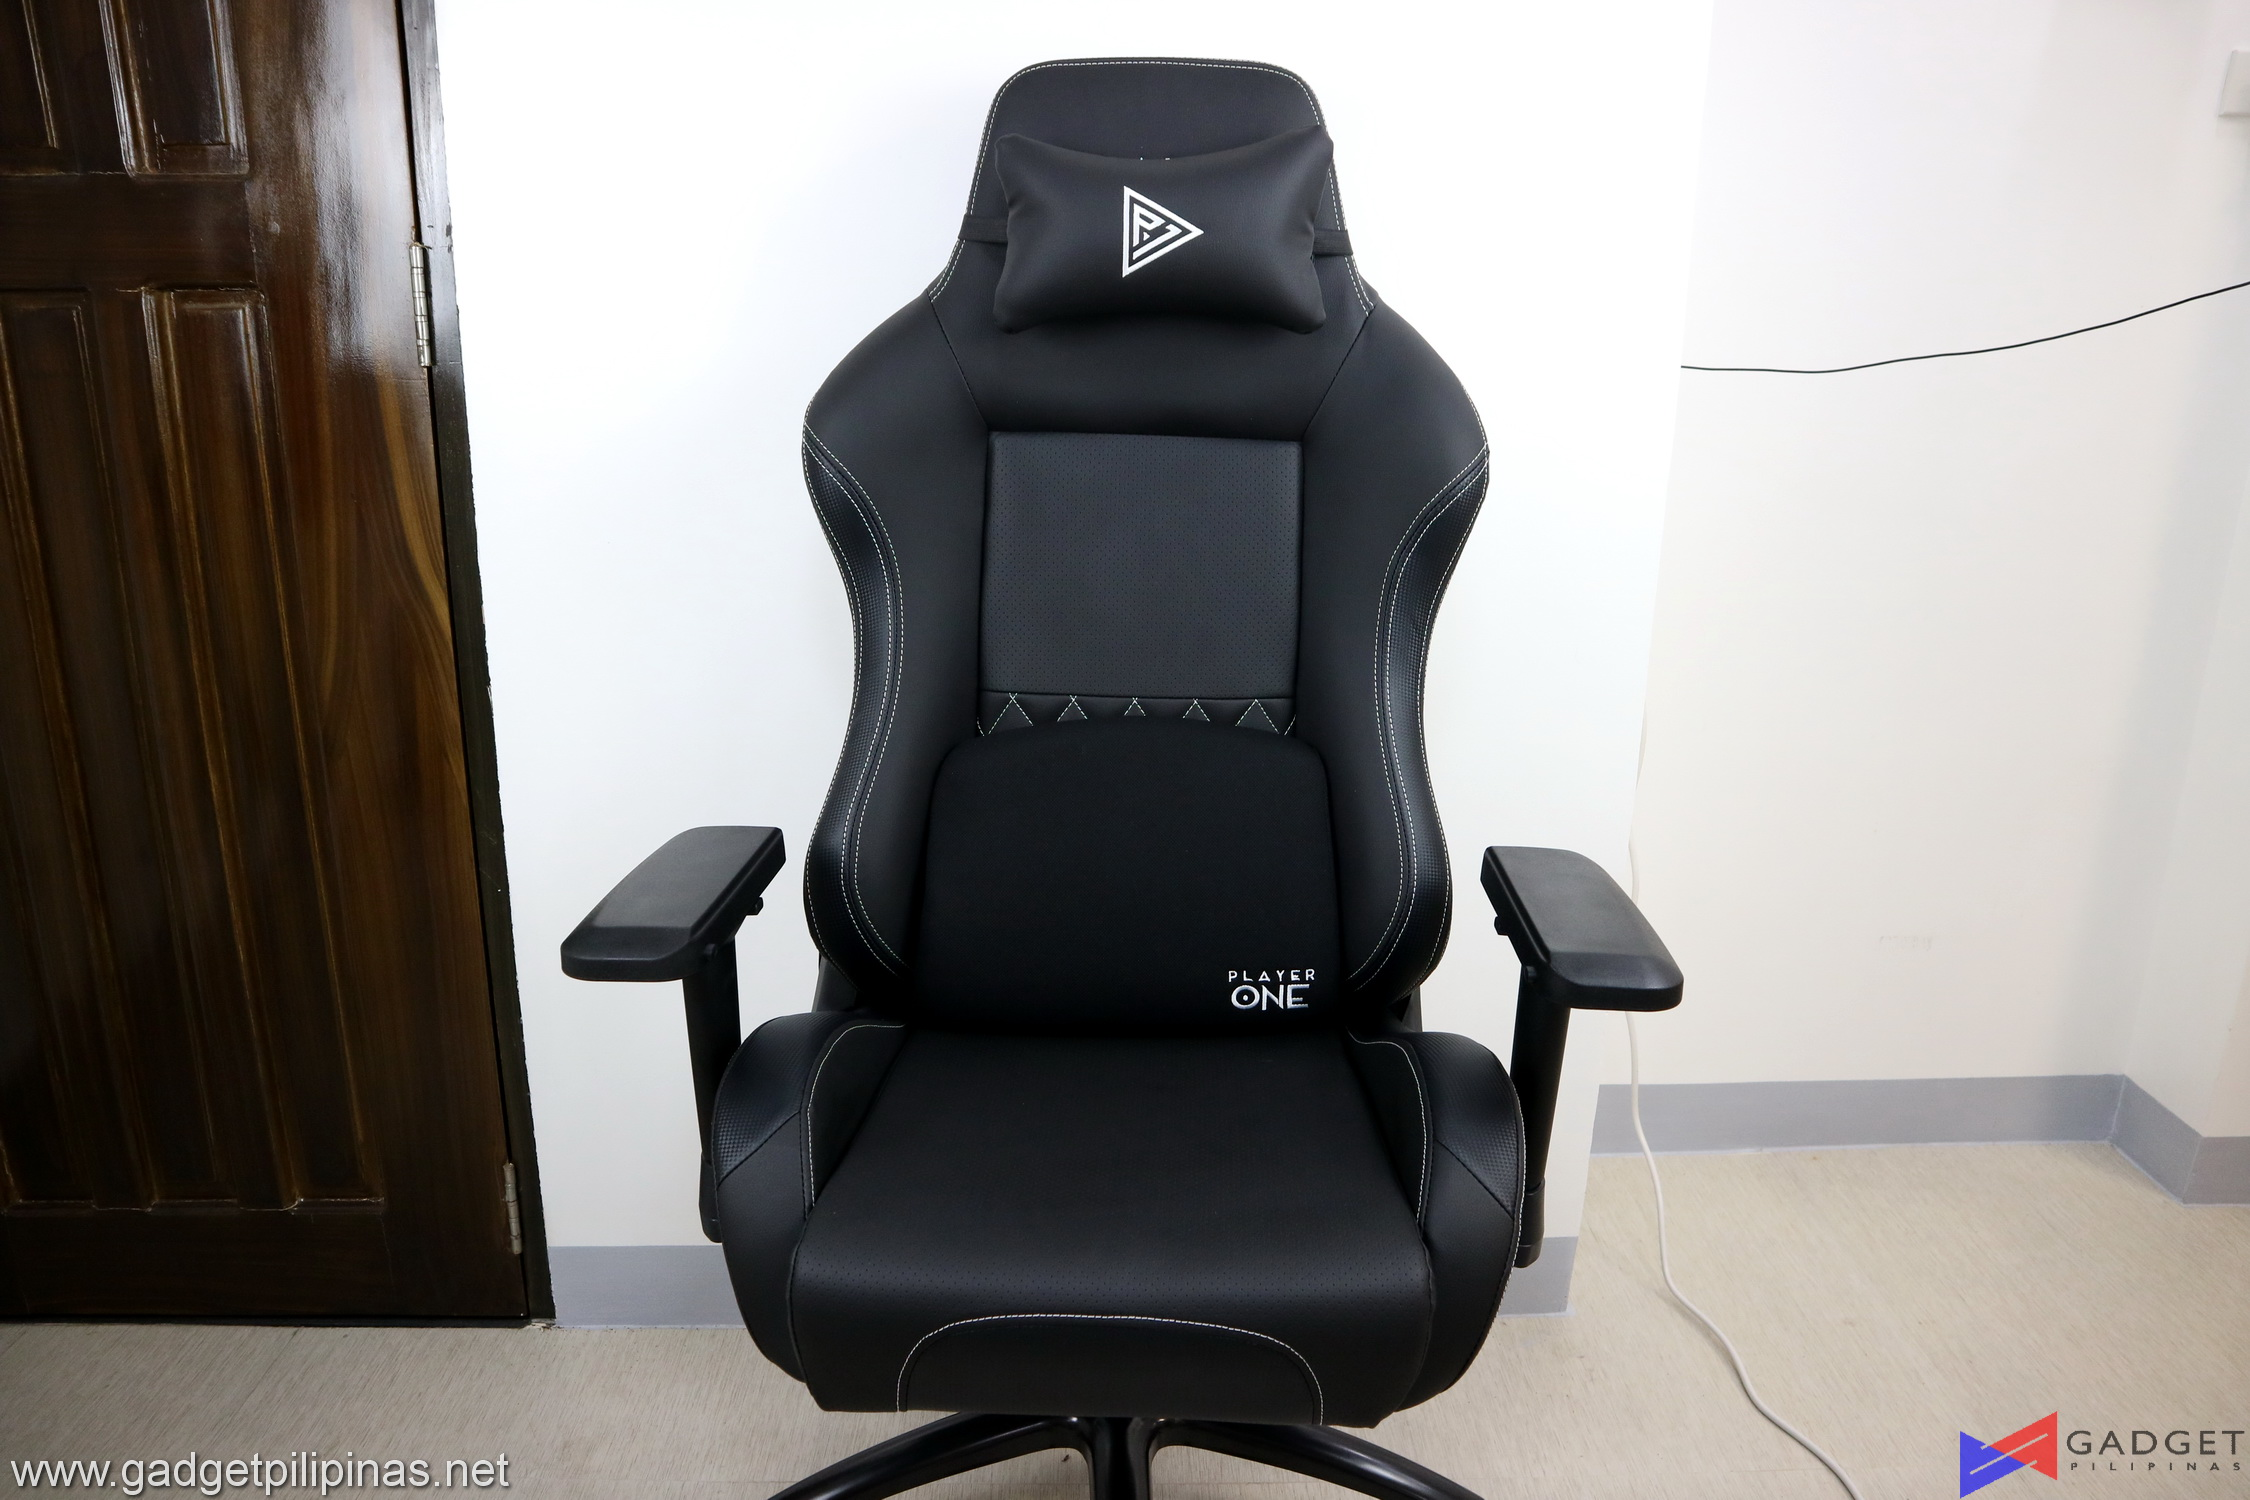 Player One Ghost v2 Gaming Chair Review